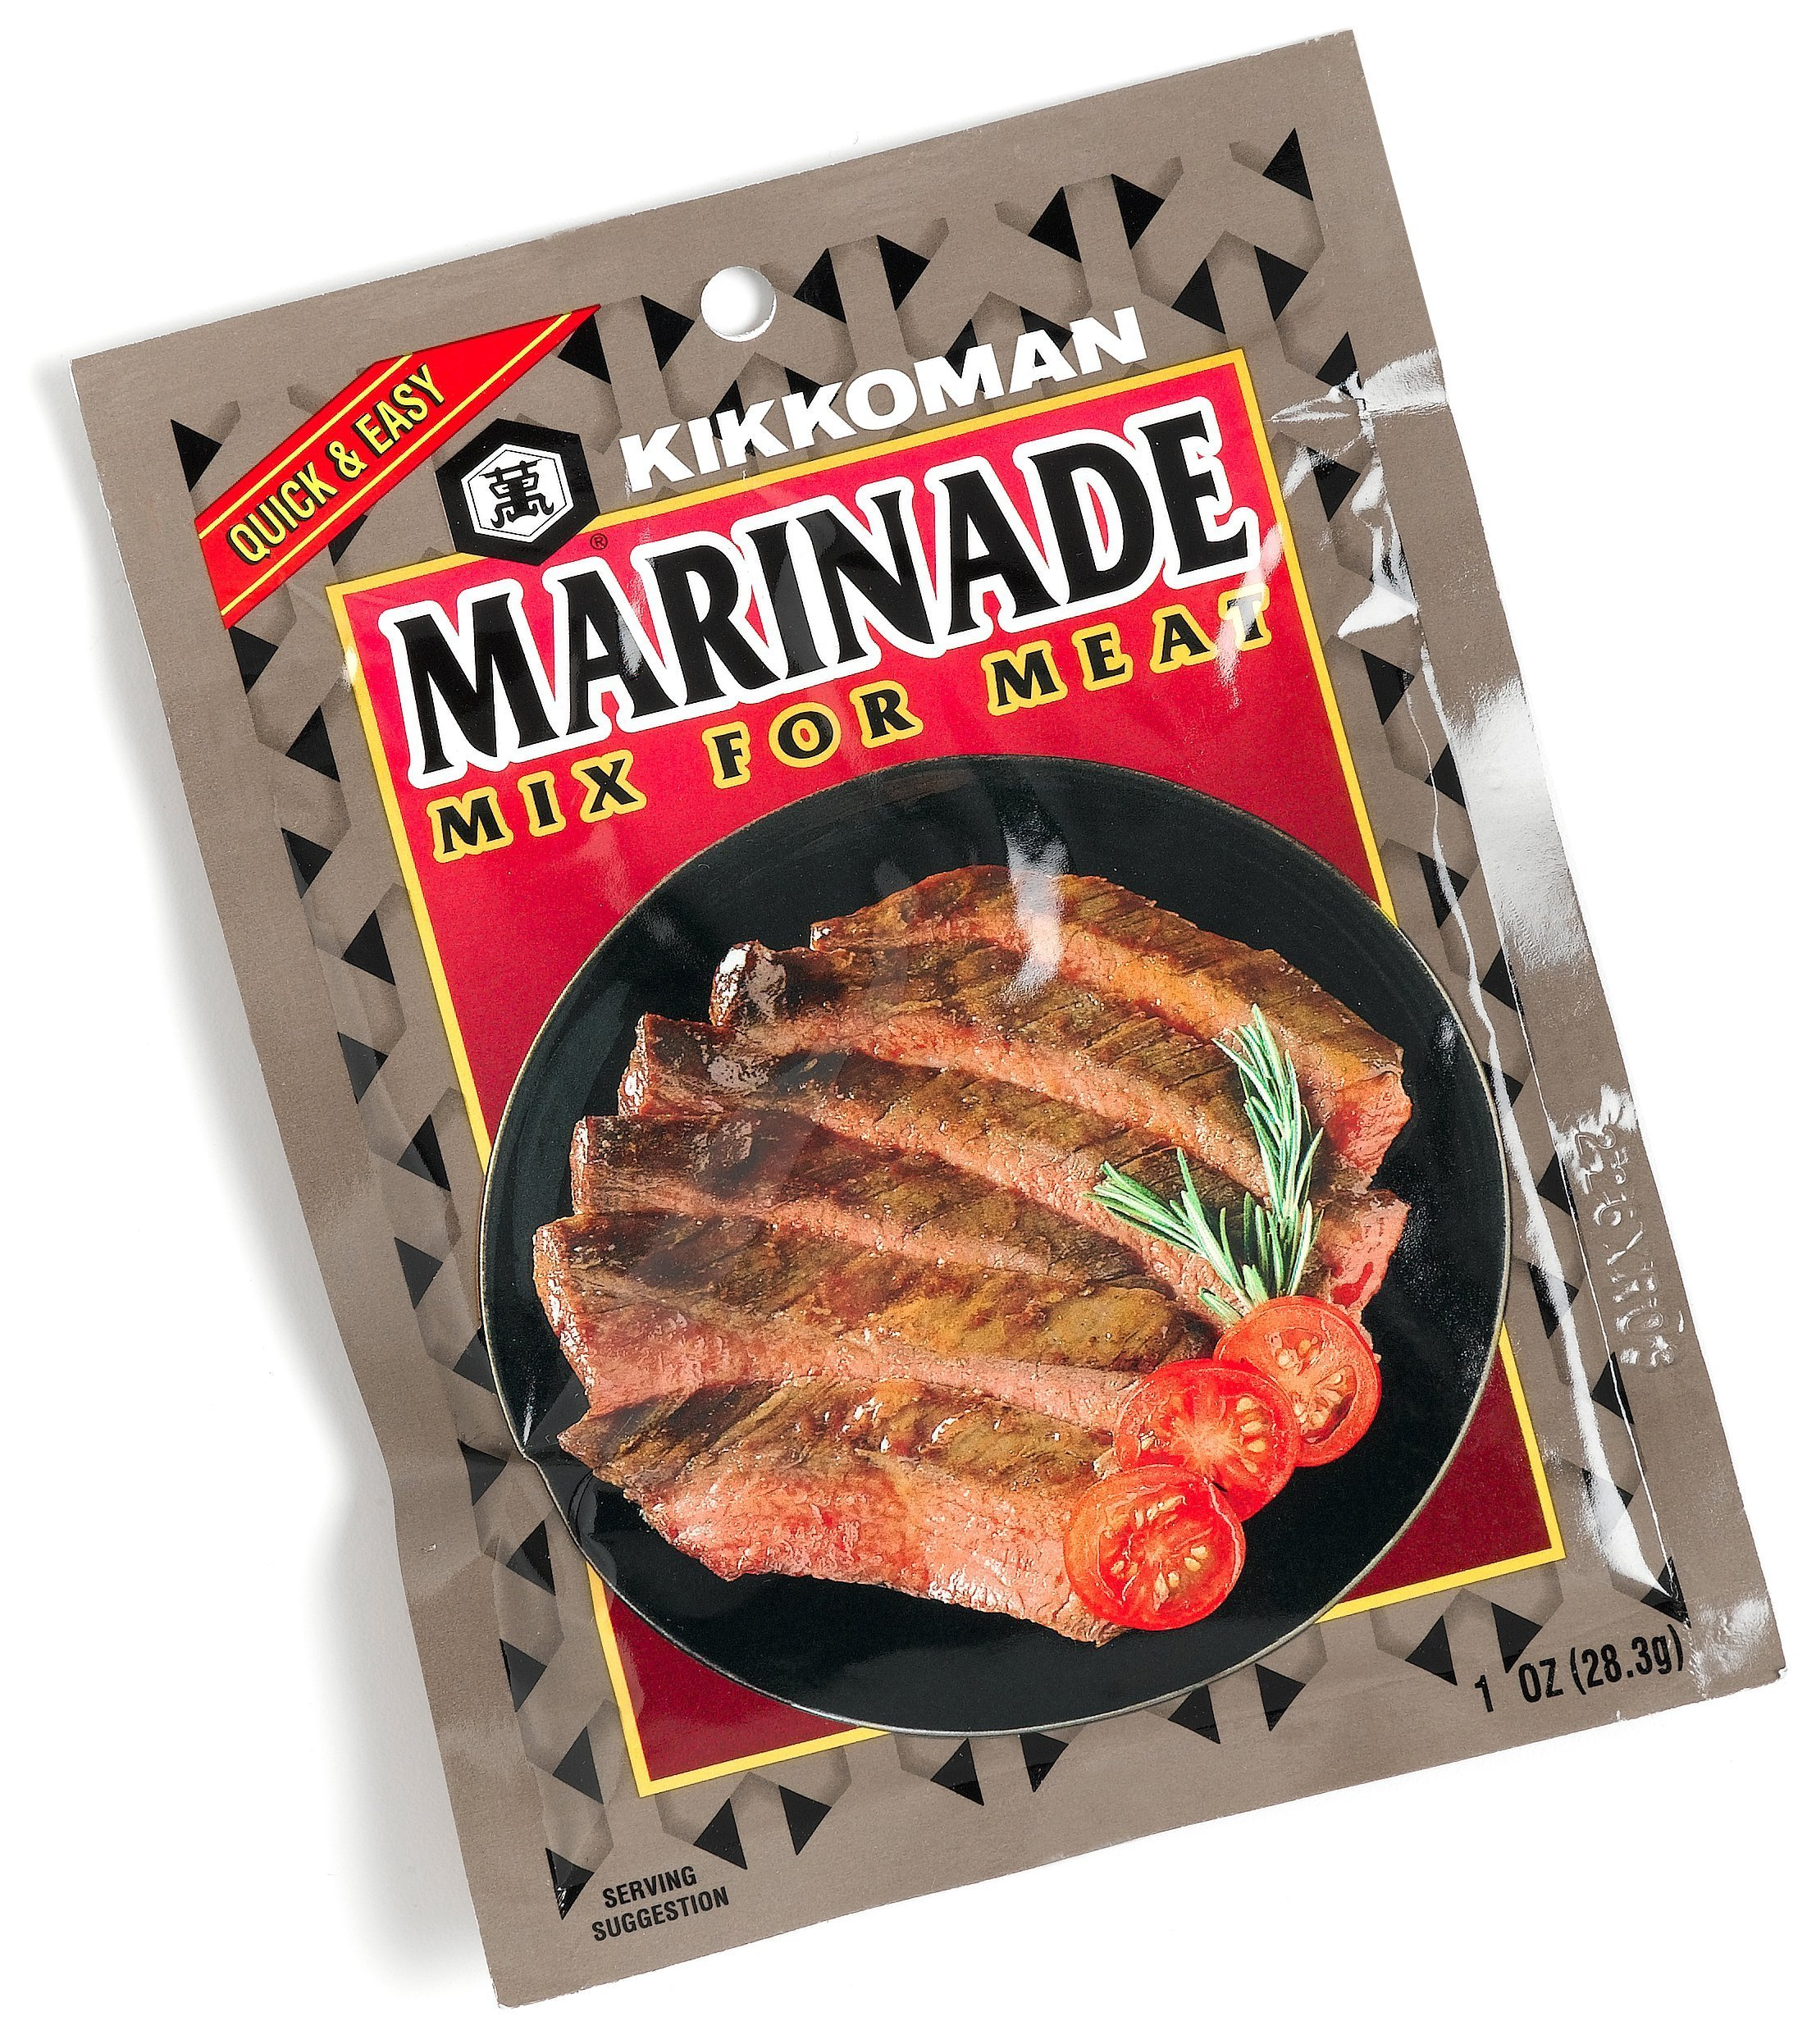 Kikkoman Marinade Mix for Meat, 1-Ounce Packages (Pack of 24)